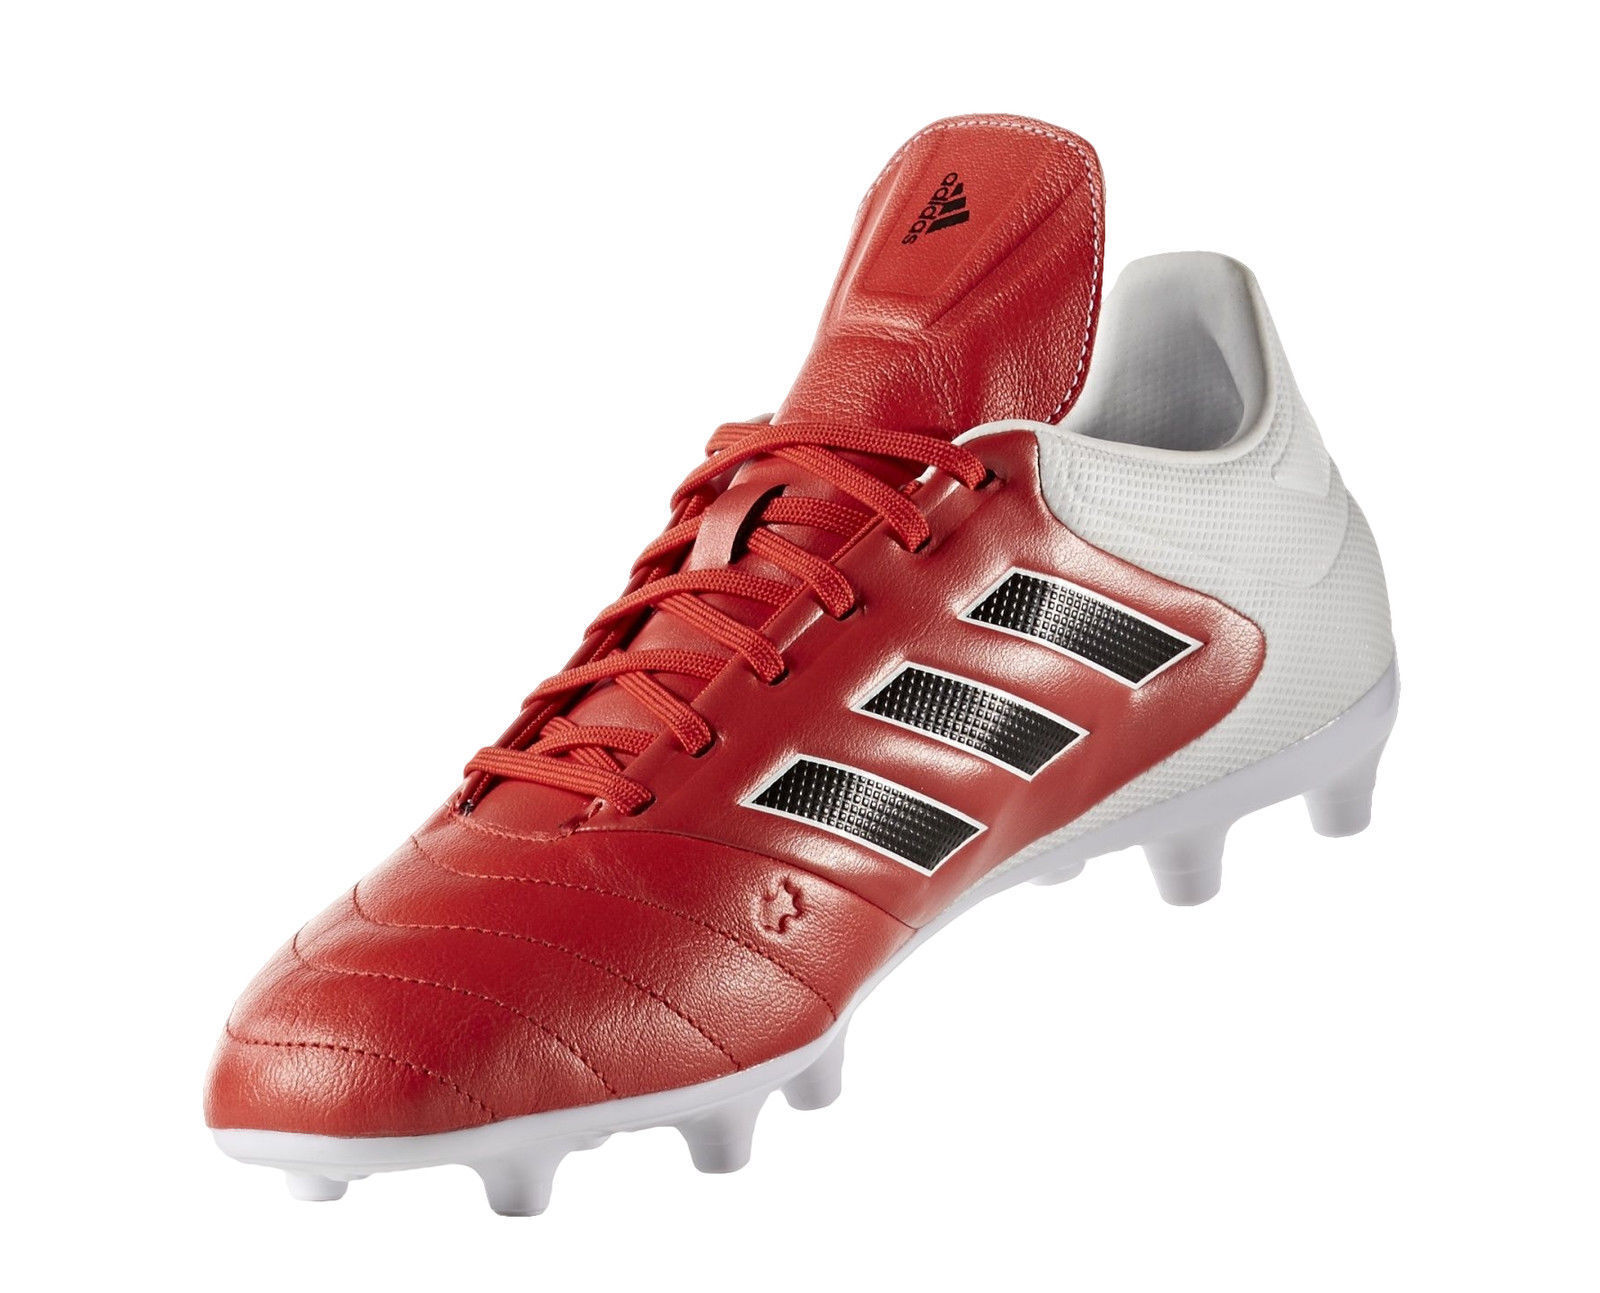 43b73f067b5e adidas COPA 17.3 Firm Ground Men s Football Boots - Red Core Black Footwear  White